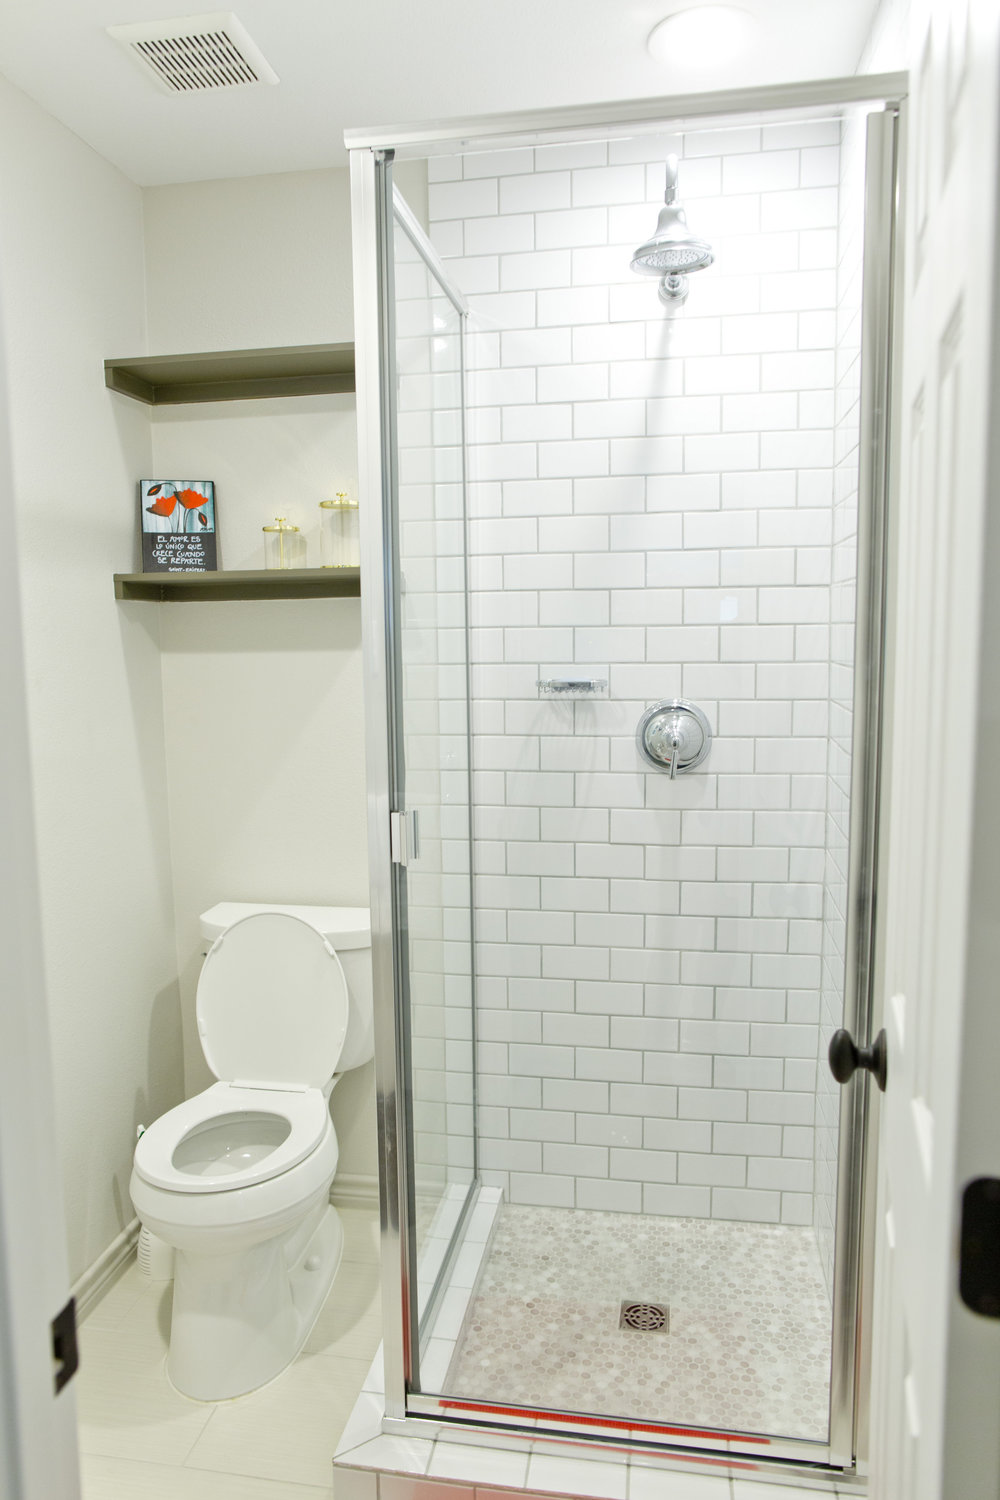 We maximized every space in creative ways, like adding a stand up shower off the laundry room so that guests staying in their upstairs room would have a full bathroom.